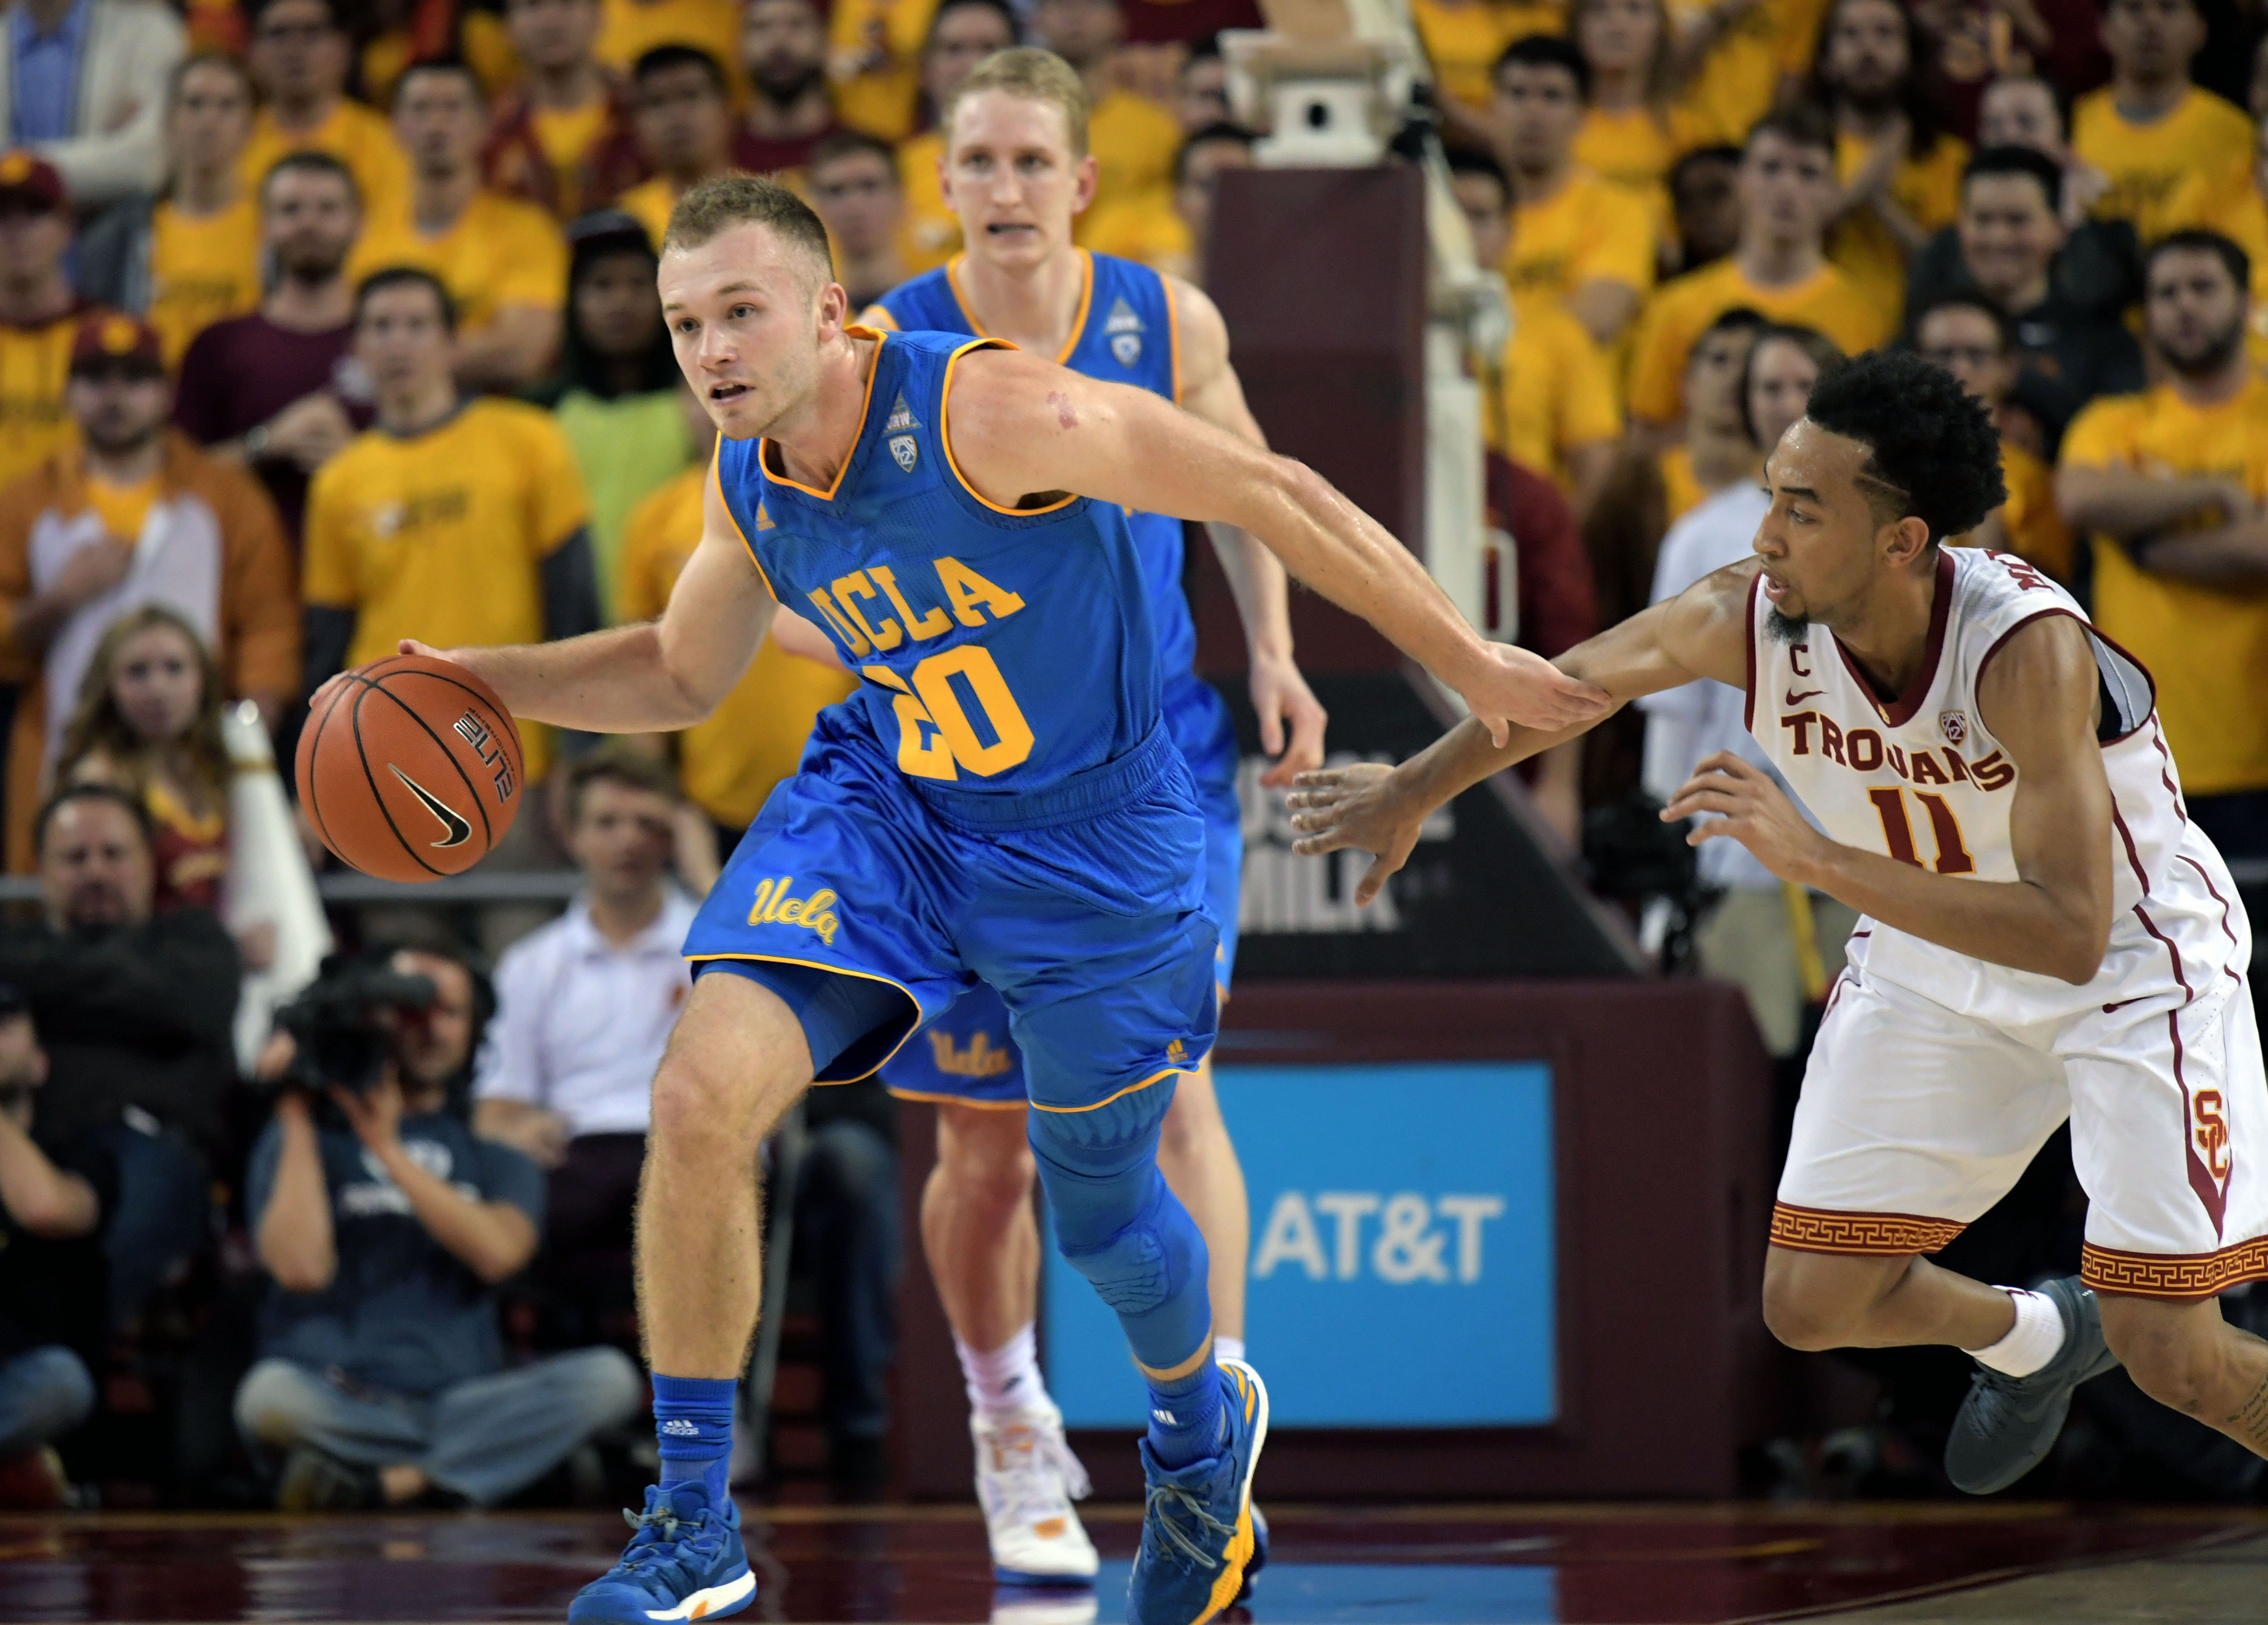 Jan 25, 2017; Los Angeles, CA, USA; UCLA Bruins guard Bryce Alford (20) controls the ball against Southern California Trojans guard Jordan McLaughlin (11) during the first half at Galen Center. Mandatory Credit: Kirby Lee-USA TODAY Sports